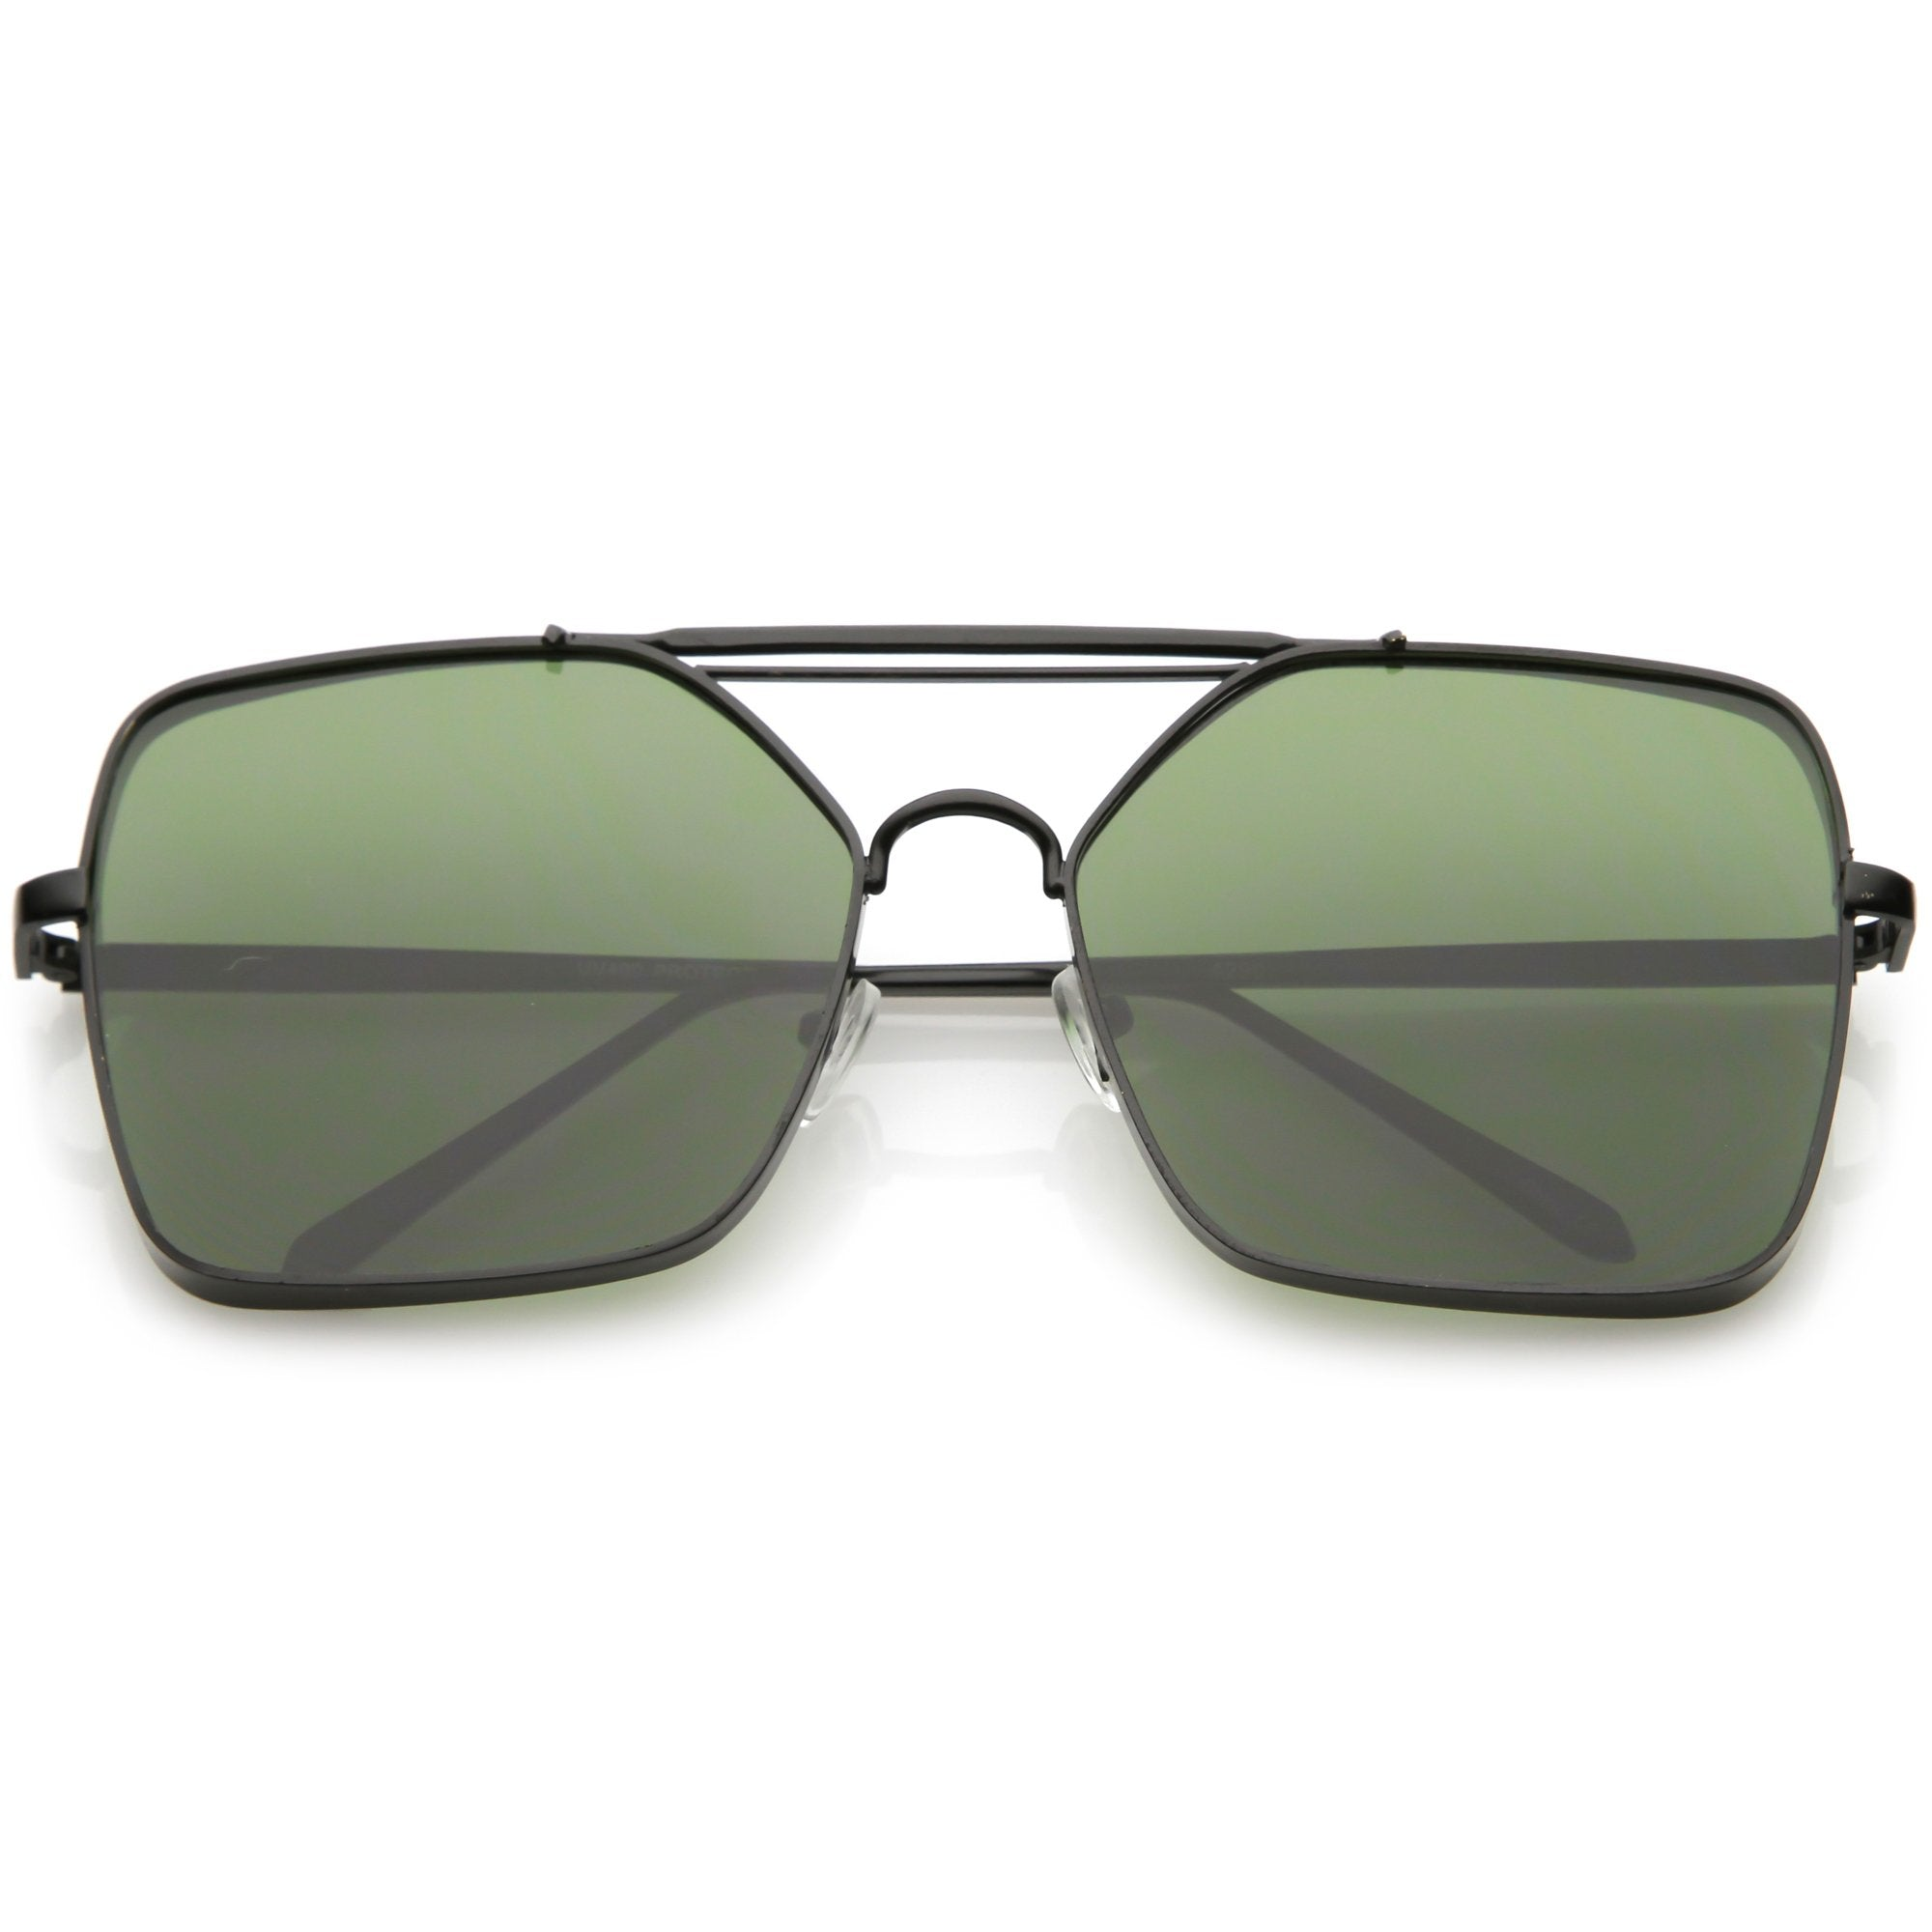 8b67a01cca451 ... Modern Square Reinforced Metal Flat Lens Aviator Sunglasses C161 ·  Black Green